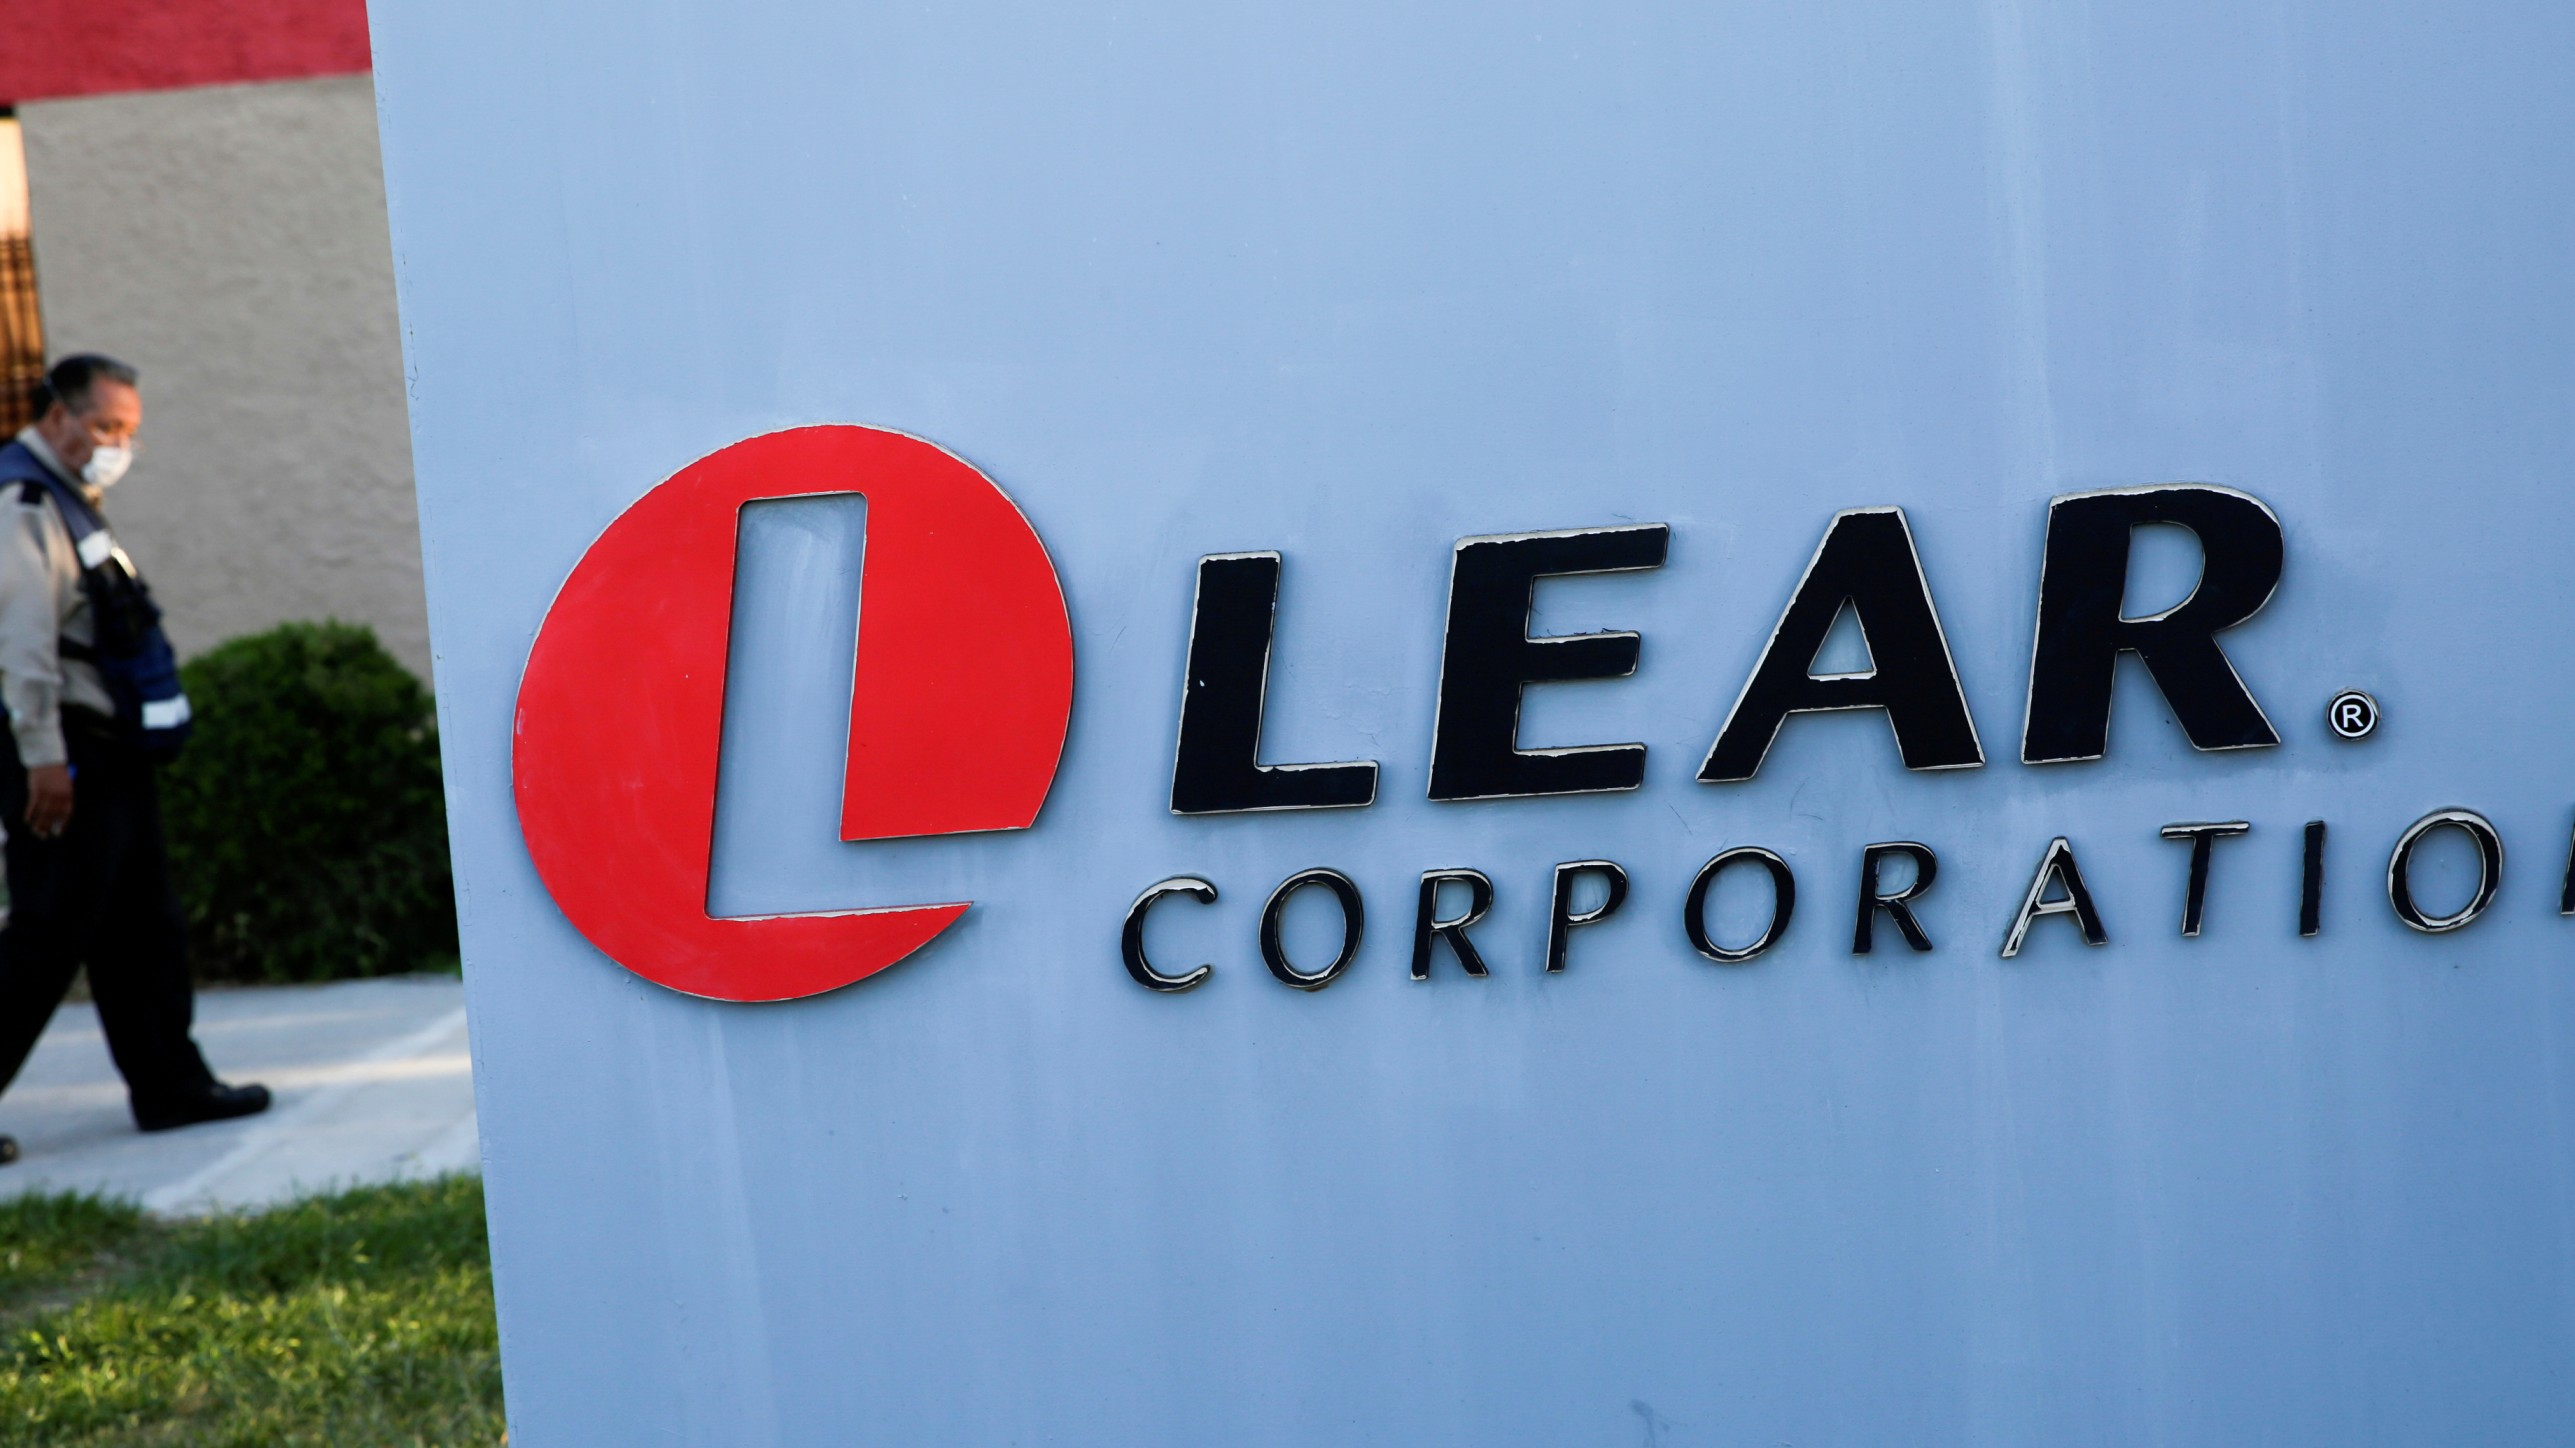 The logo of Lear Corporation, a Michigan-based car seat maker, near a man walking with a face mask